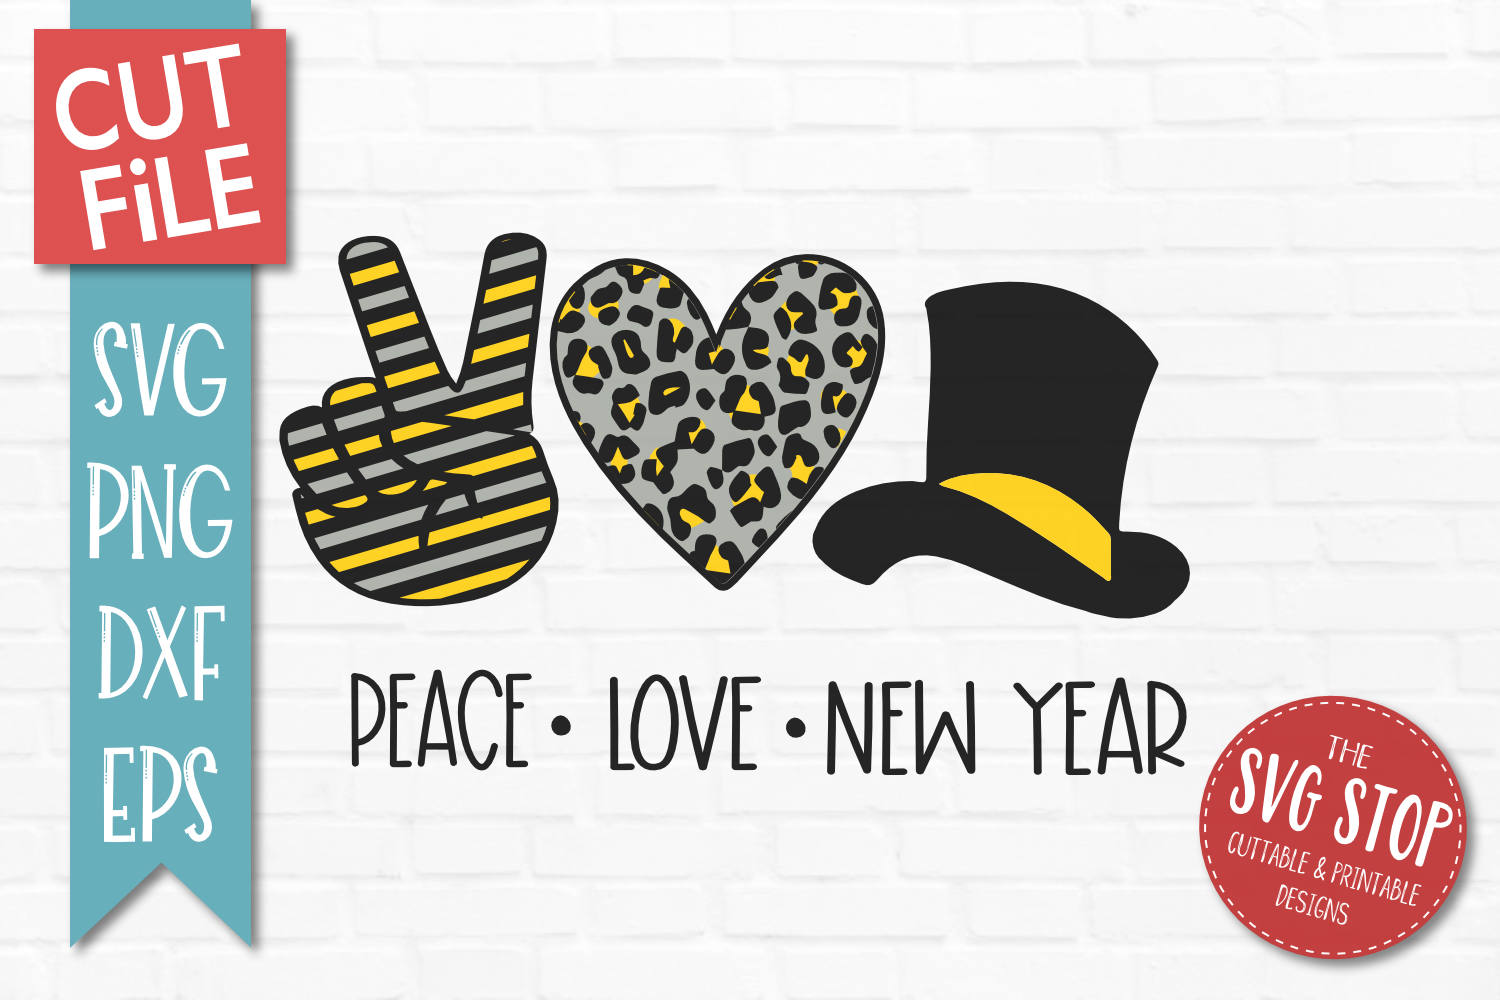 Peace Love New Years Eve SVG, PNG, DXF, EPS example image 1